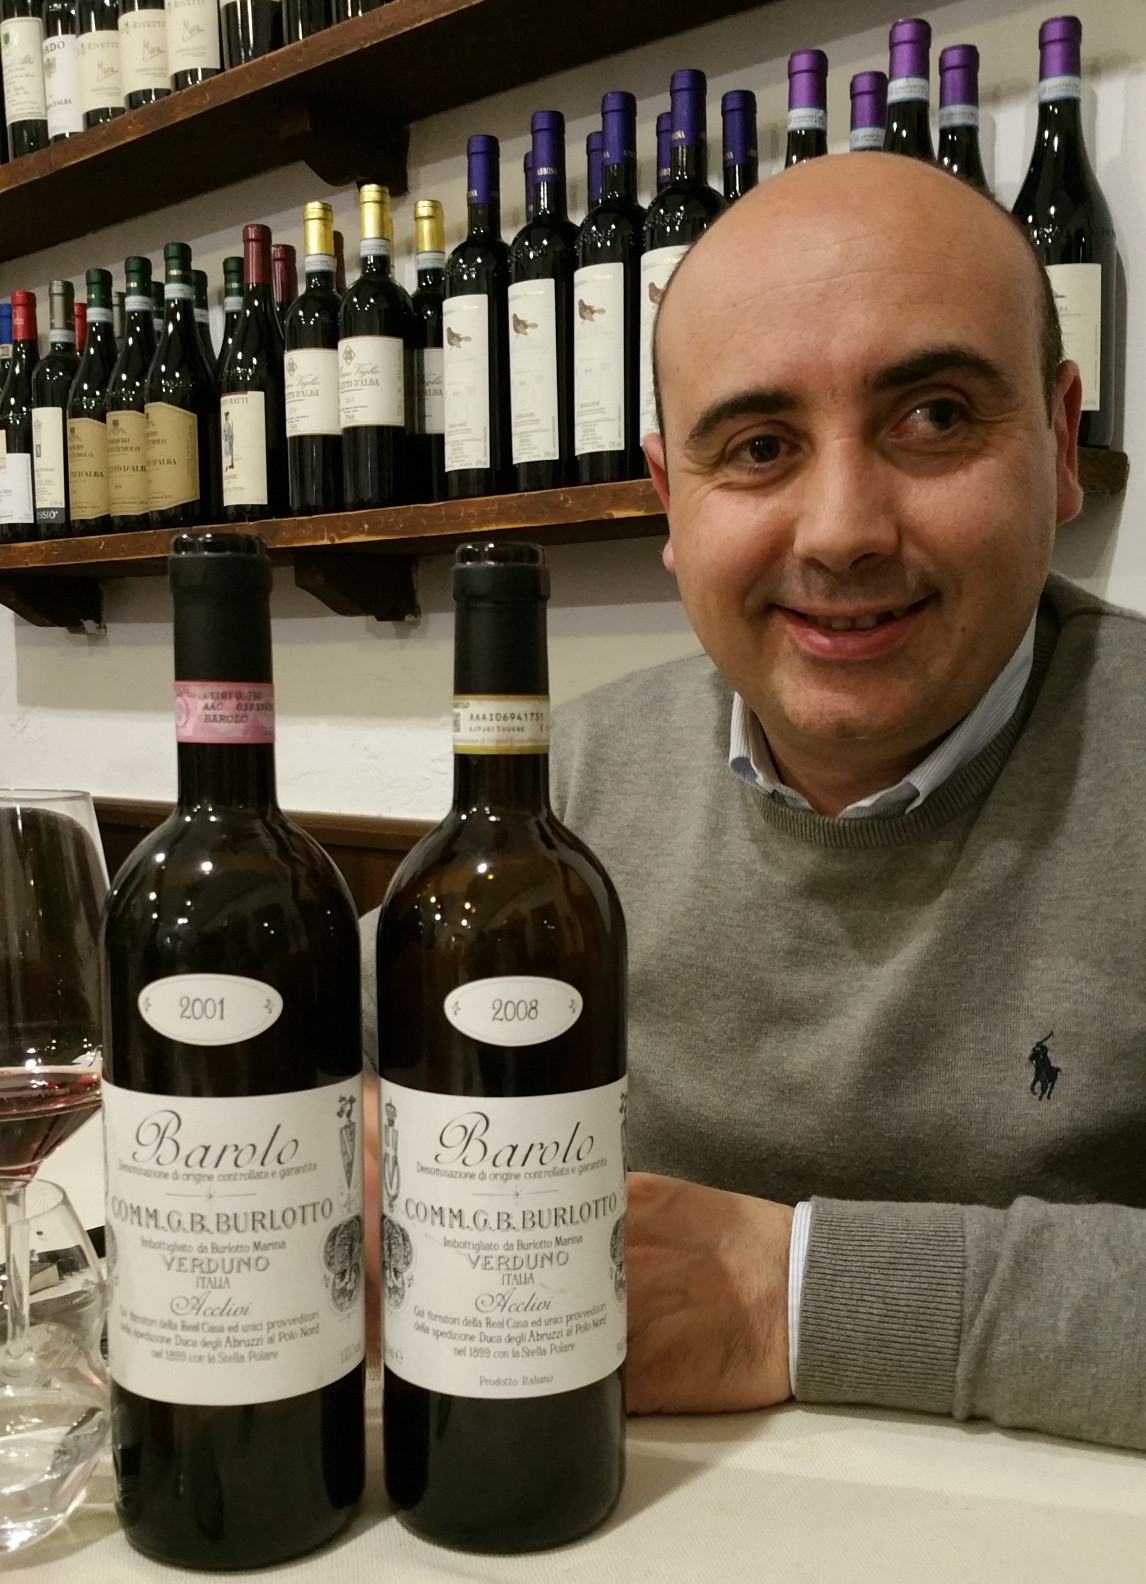 Verduno: The village all Barolo fans should be checking out